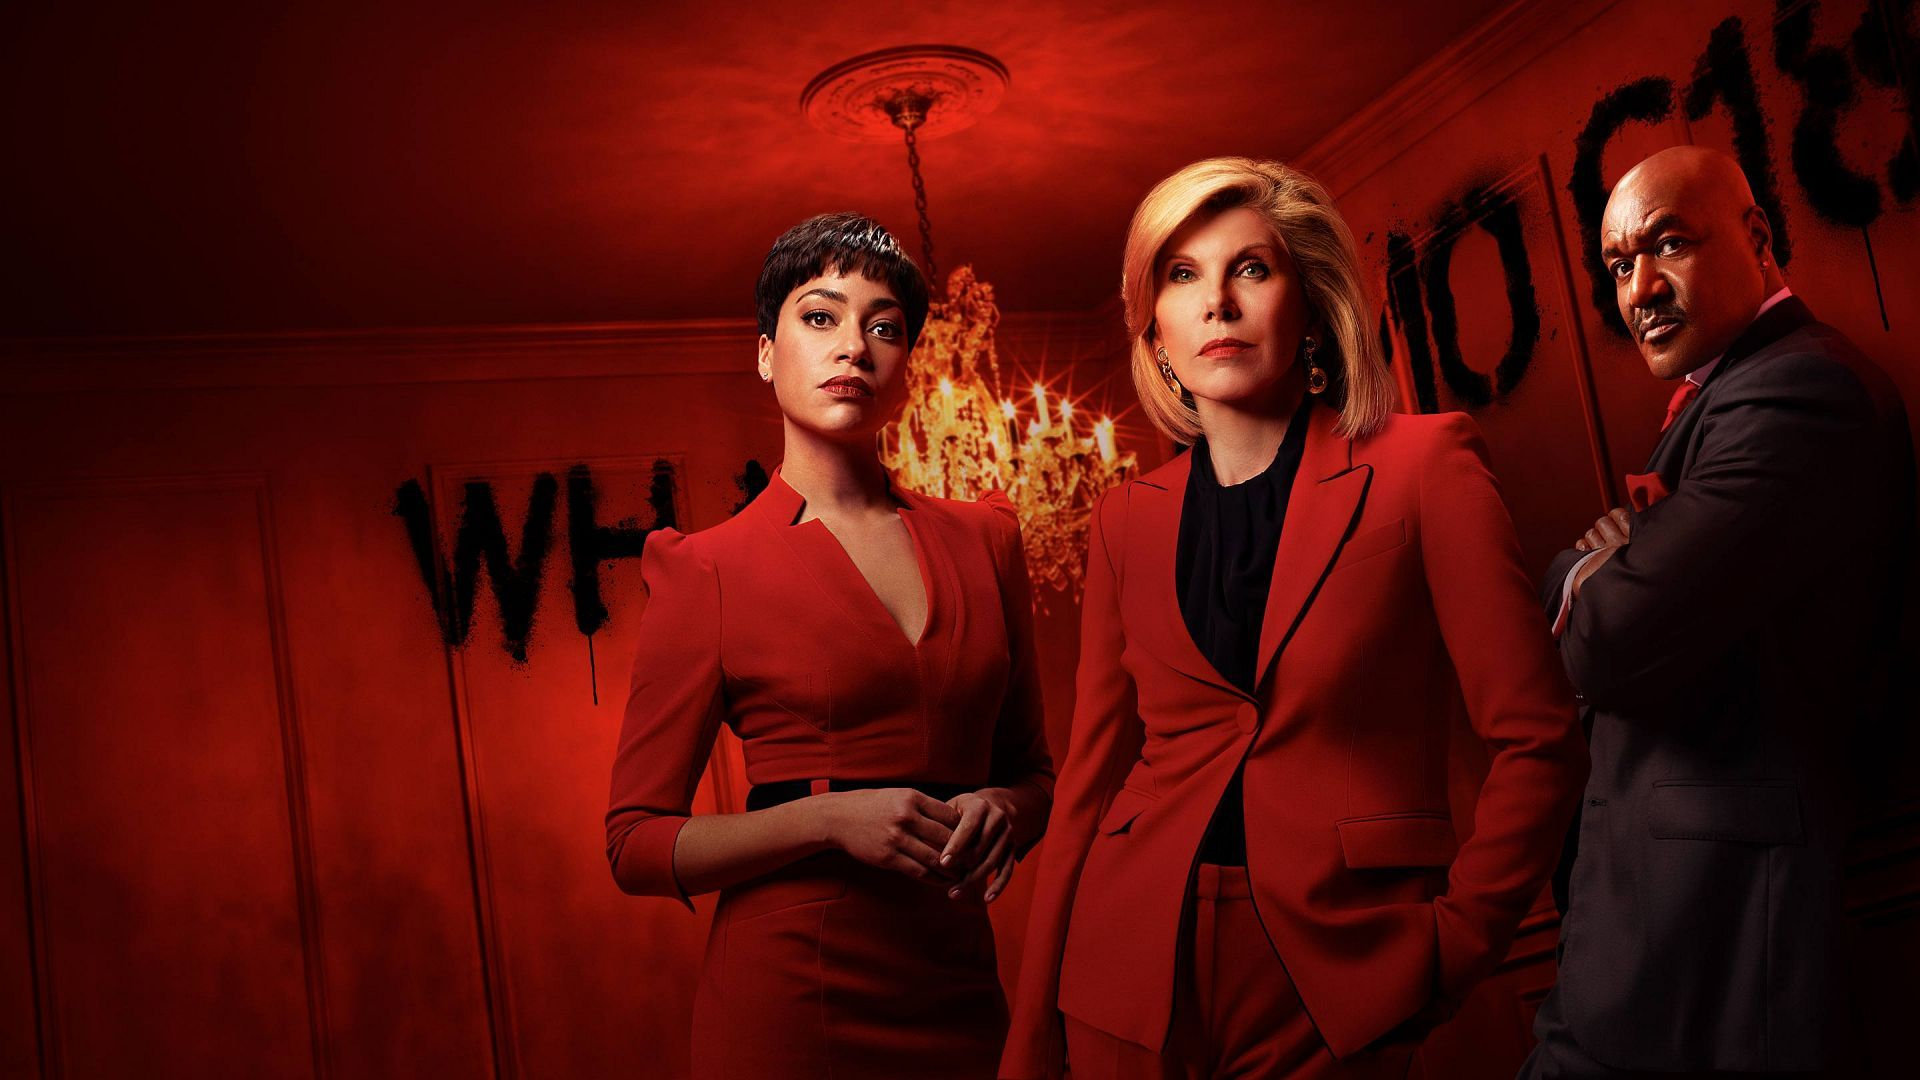 The Good Fight season 5 release date and more